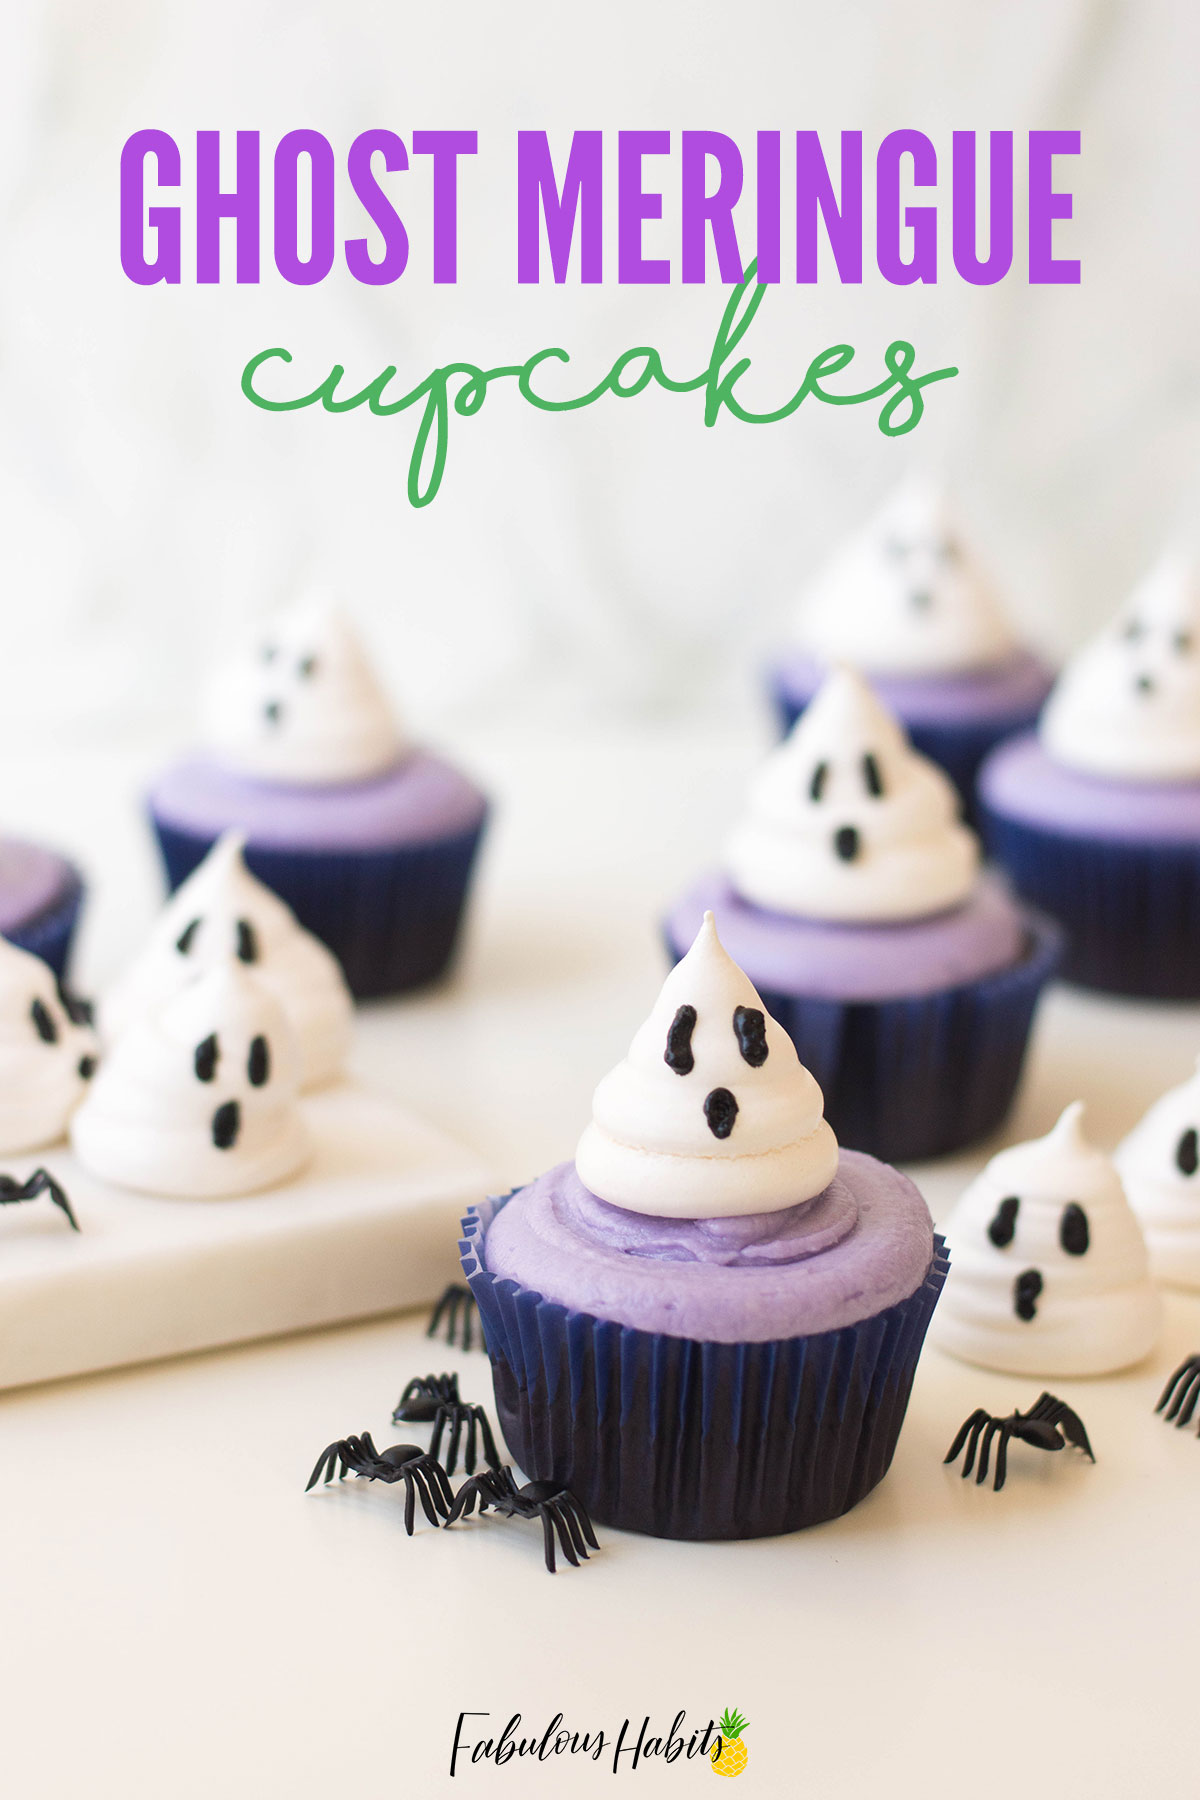 Halloween Ghost Cupcakes for your spooky sweet table. The kids will love making this Halloween recipe with you. Roll up your sleeves - you've got some baking to do! #halloweendesserts